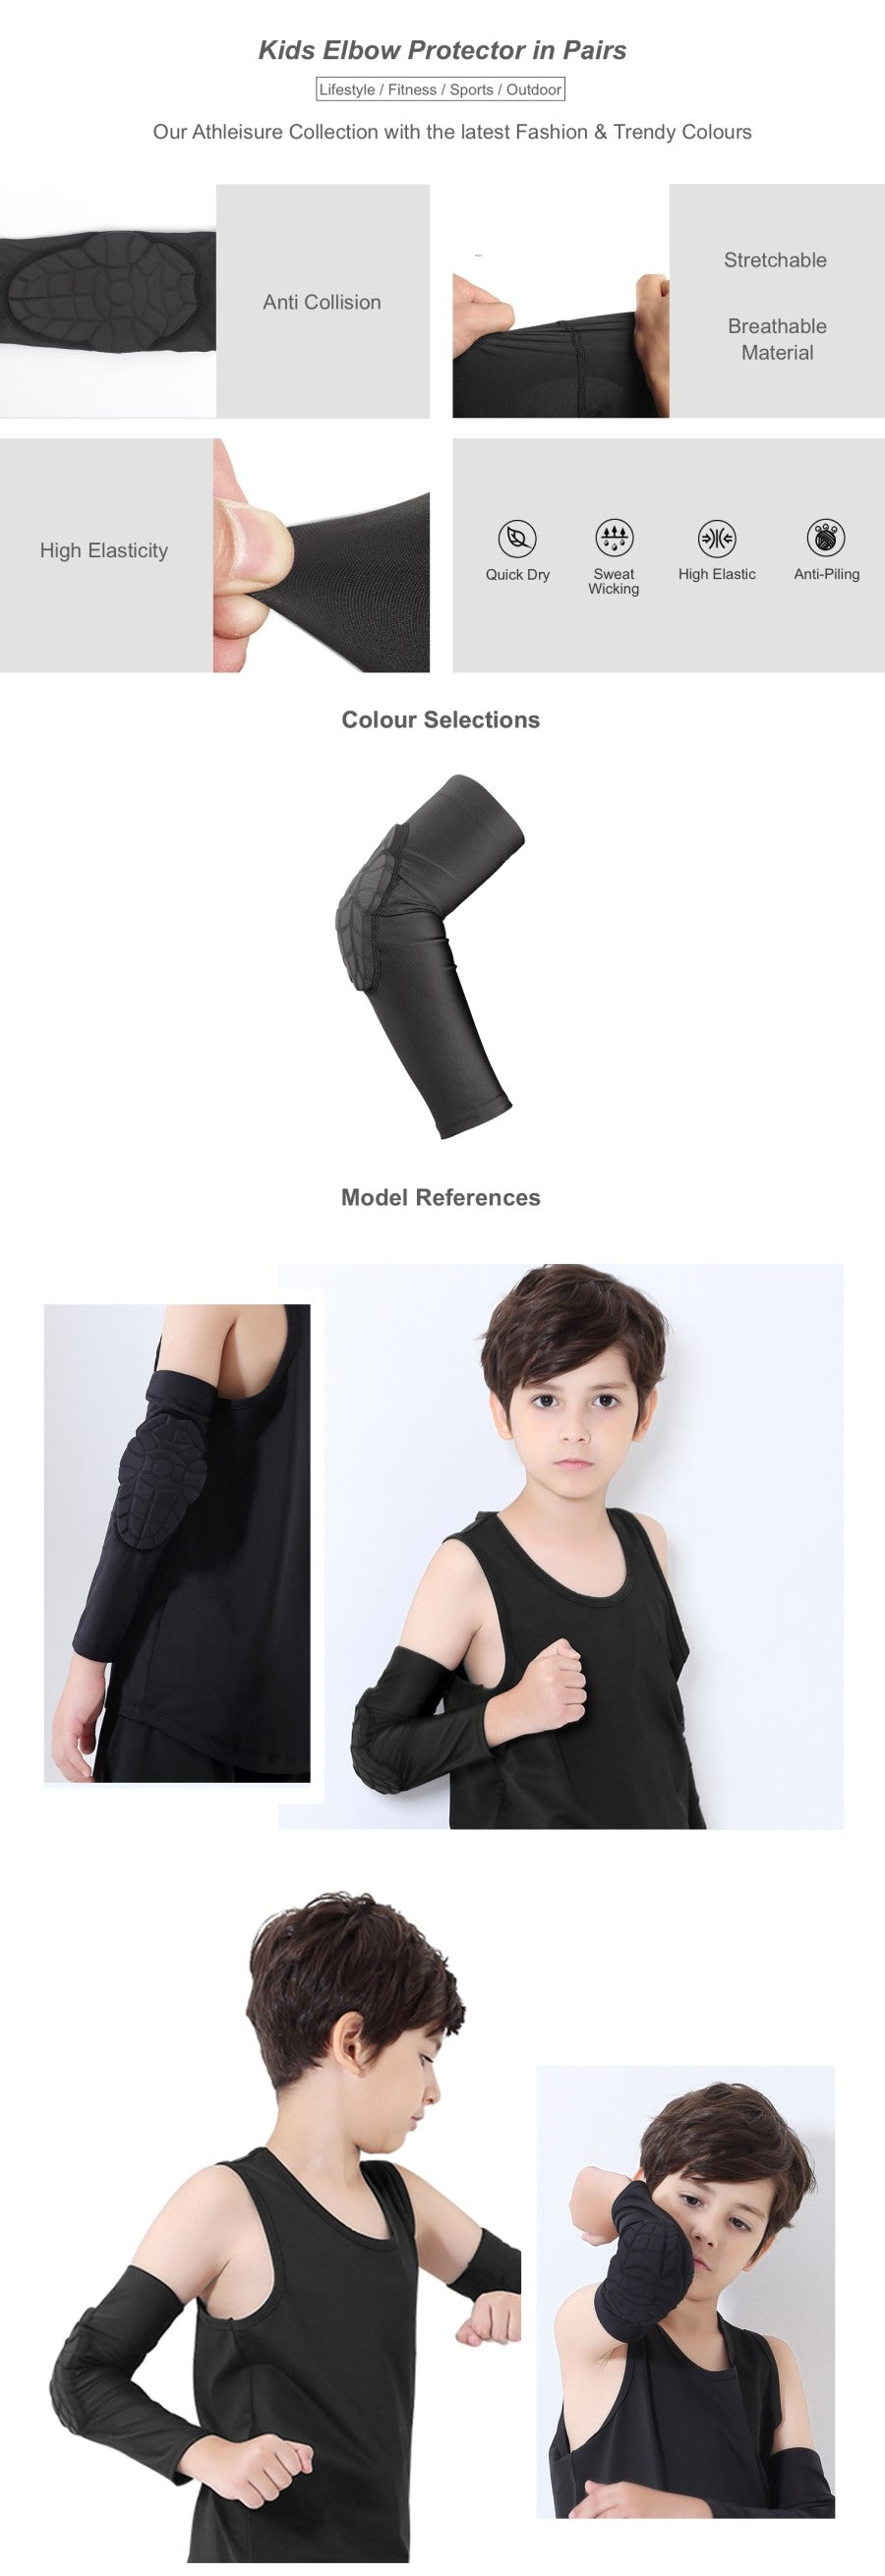 Kids Elbow Protector in Pairs